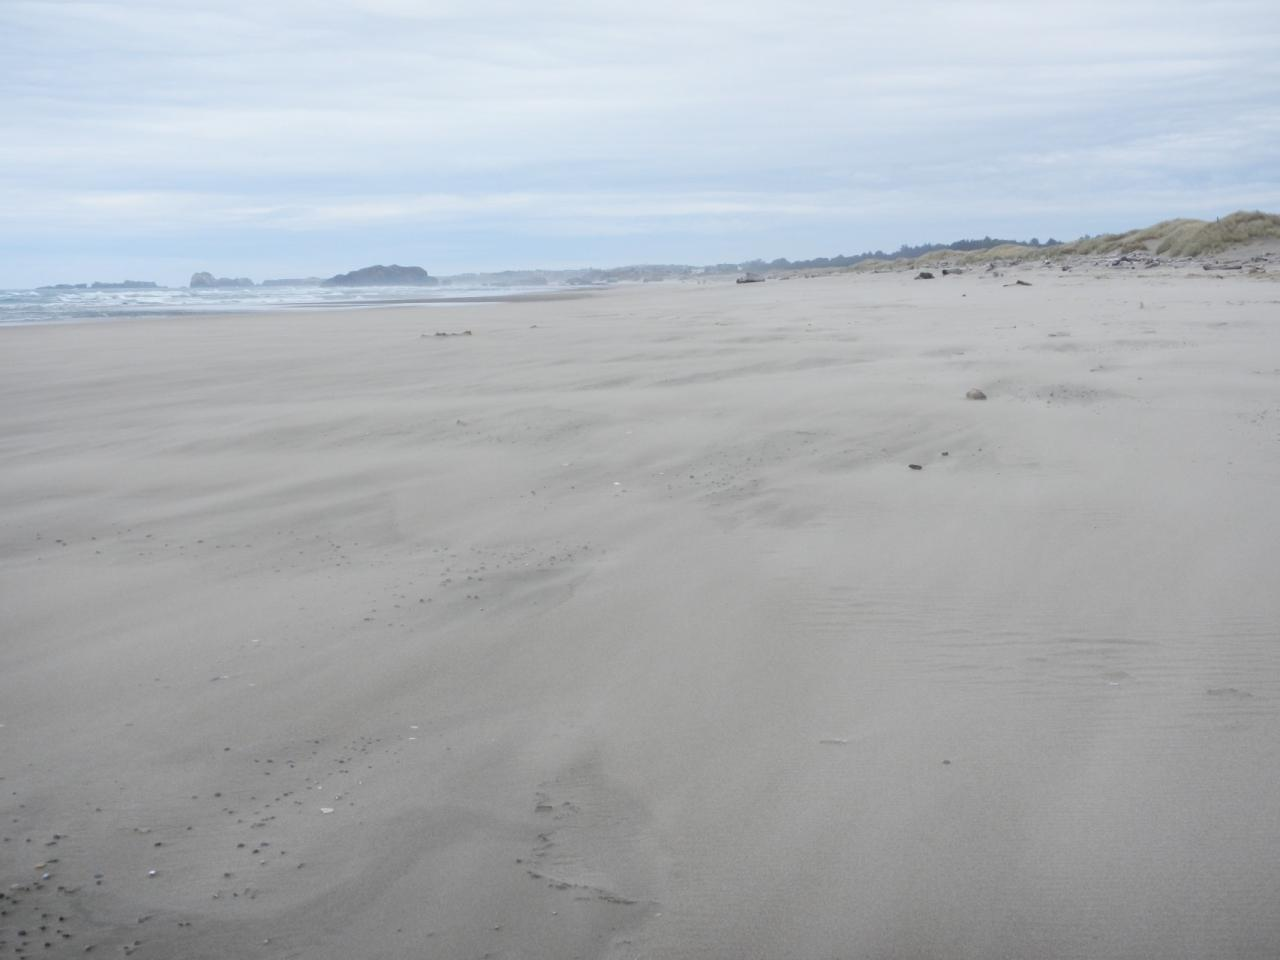 Beach is almost flat today.  Little driftline as the wind has blown it clean!